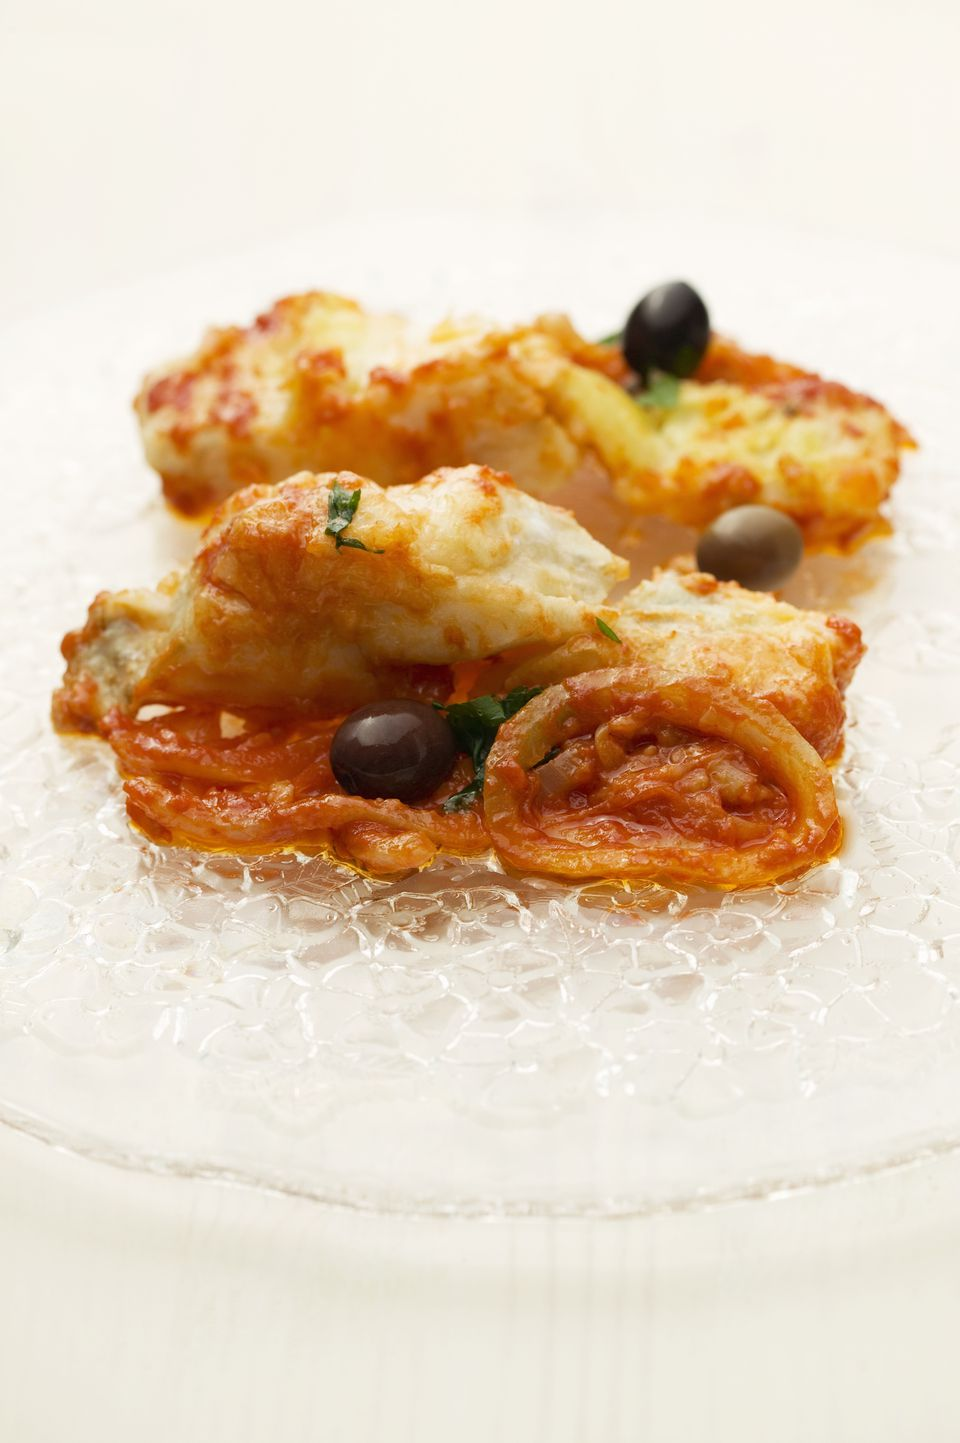 Fried cod fillet with tomato sauce and olives